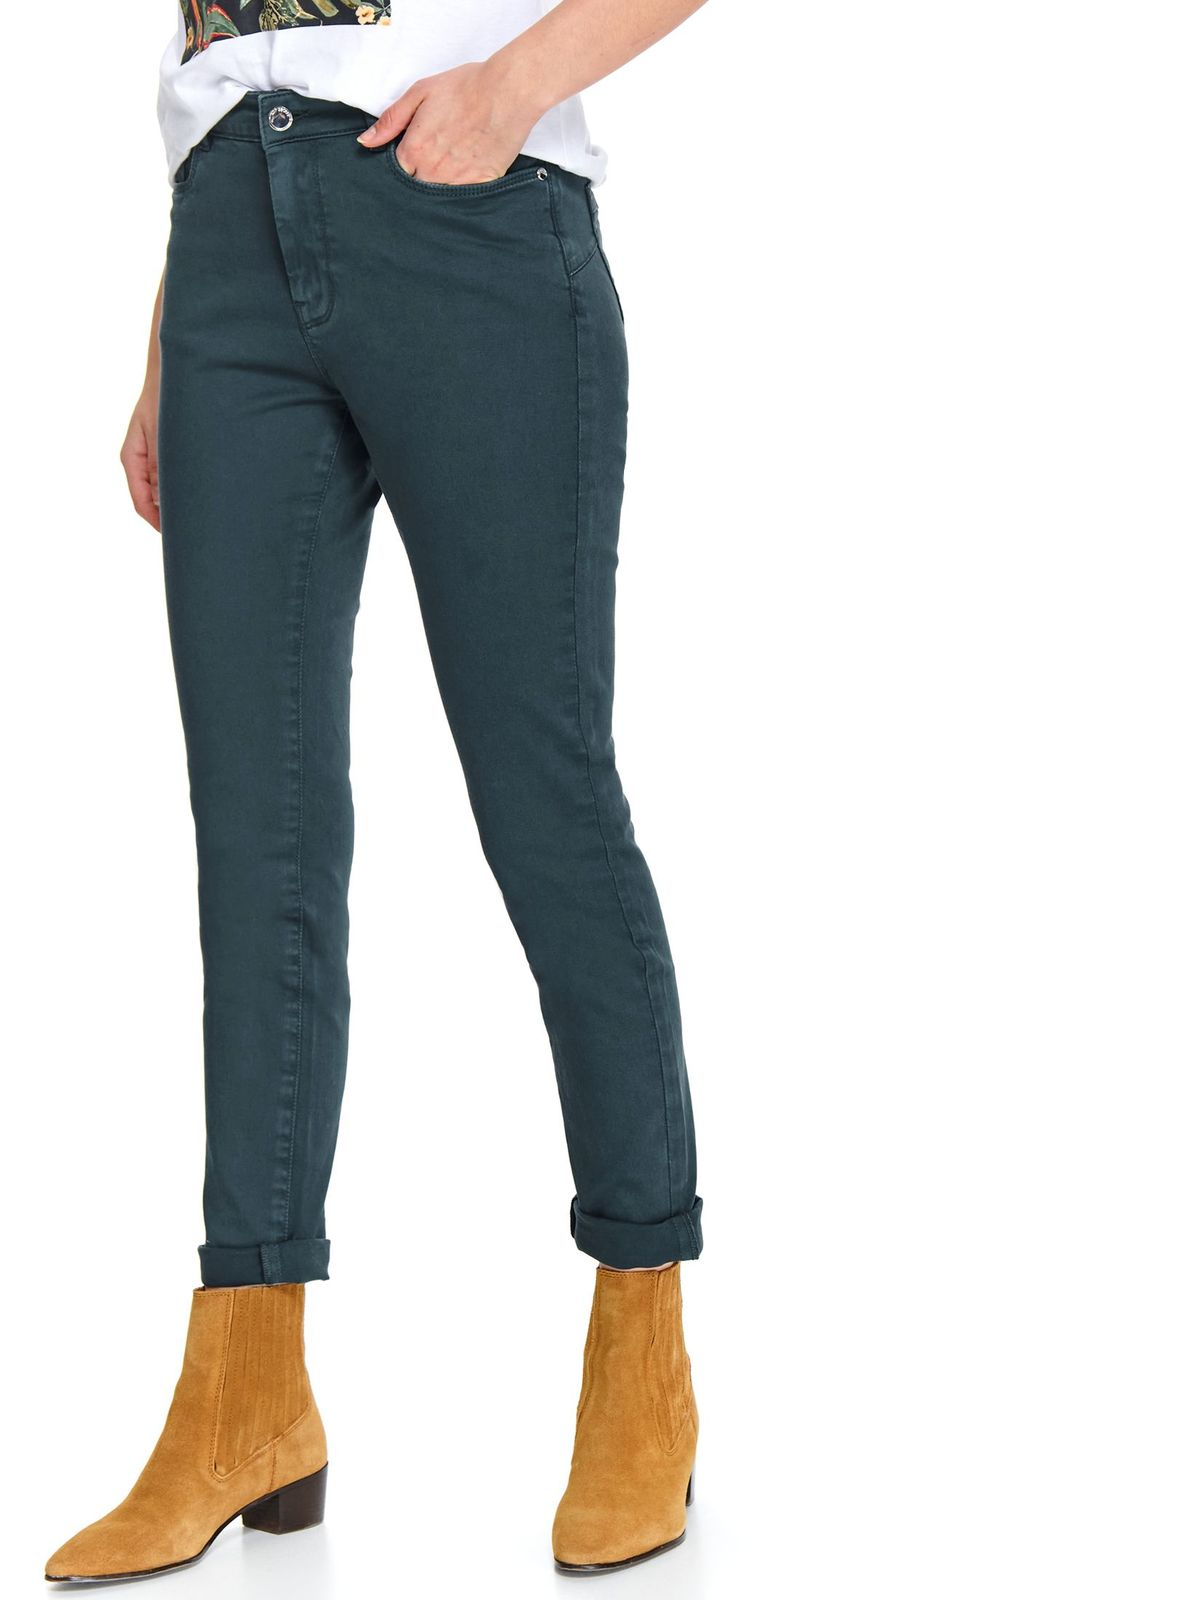 Turquoise trousers casual long medium waist slightly elastic cotton with tented cut